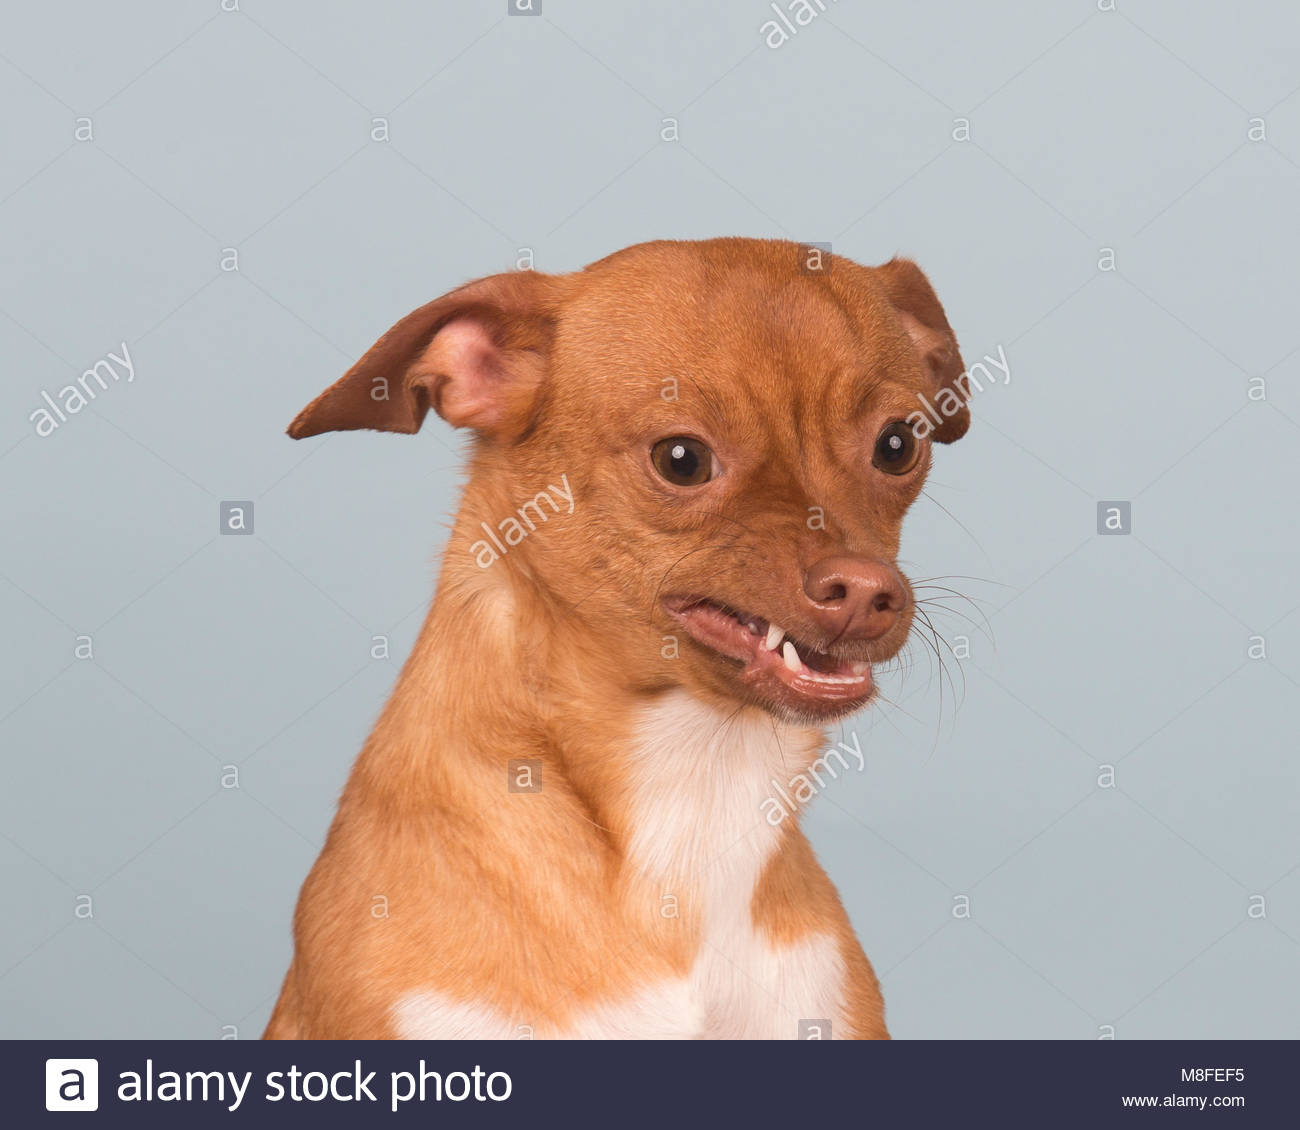 Close up of a white and red chihuahua mix dog with a funny expression against a light blue studio background - Stock Image